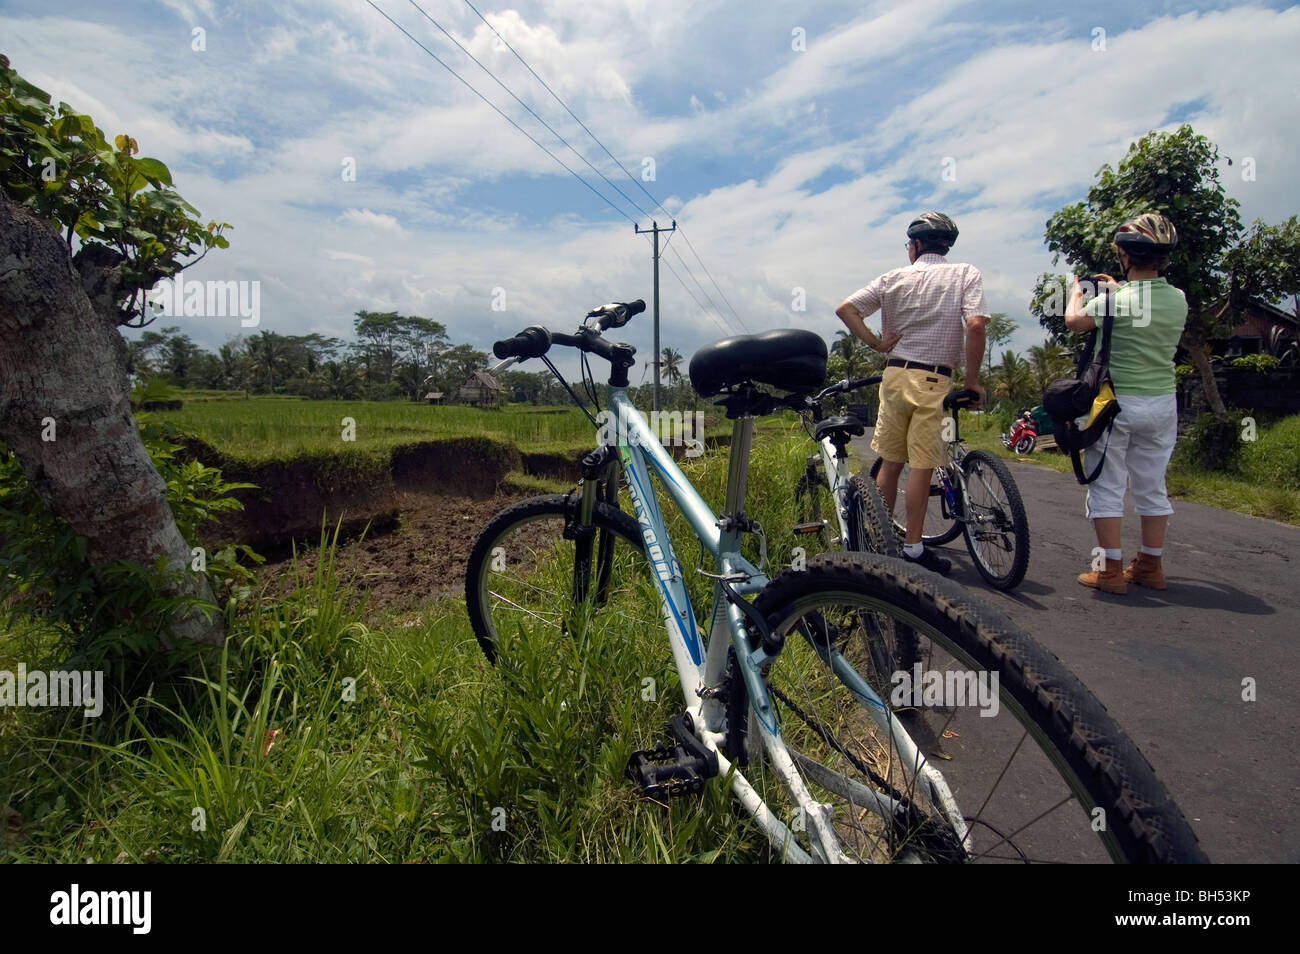 Middle-aged tourist couple pause for a photo on a bicycle tour in Bali, Indonesia. No MR or PR Stock Photo